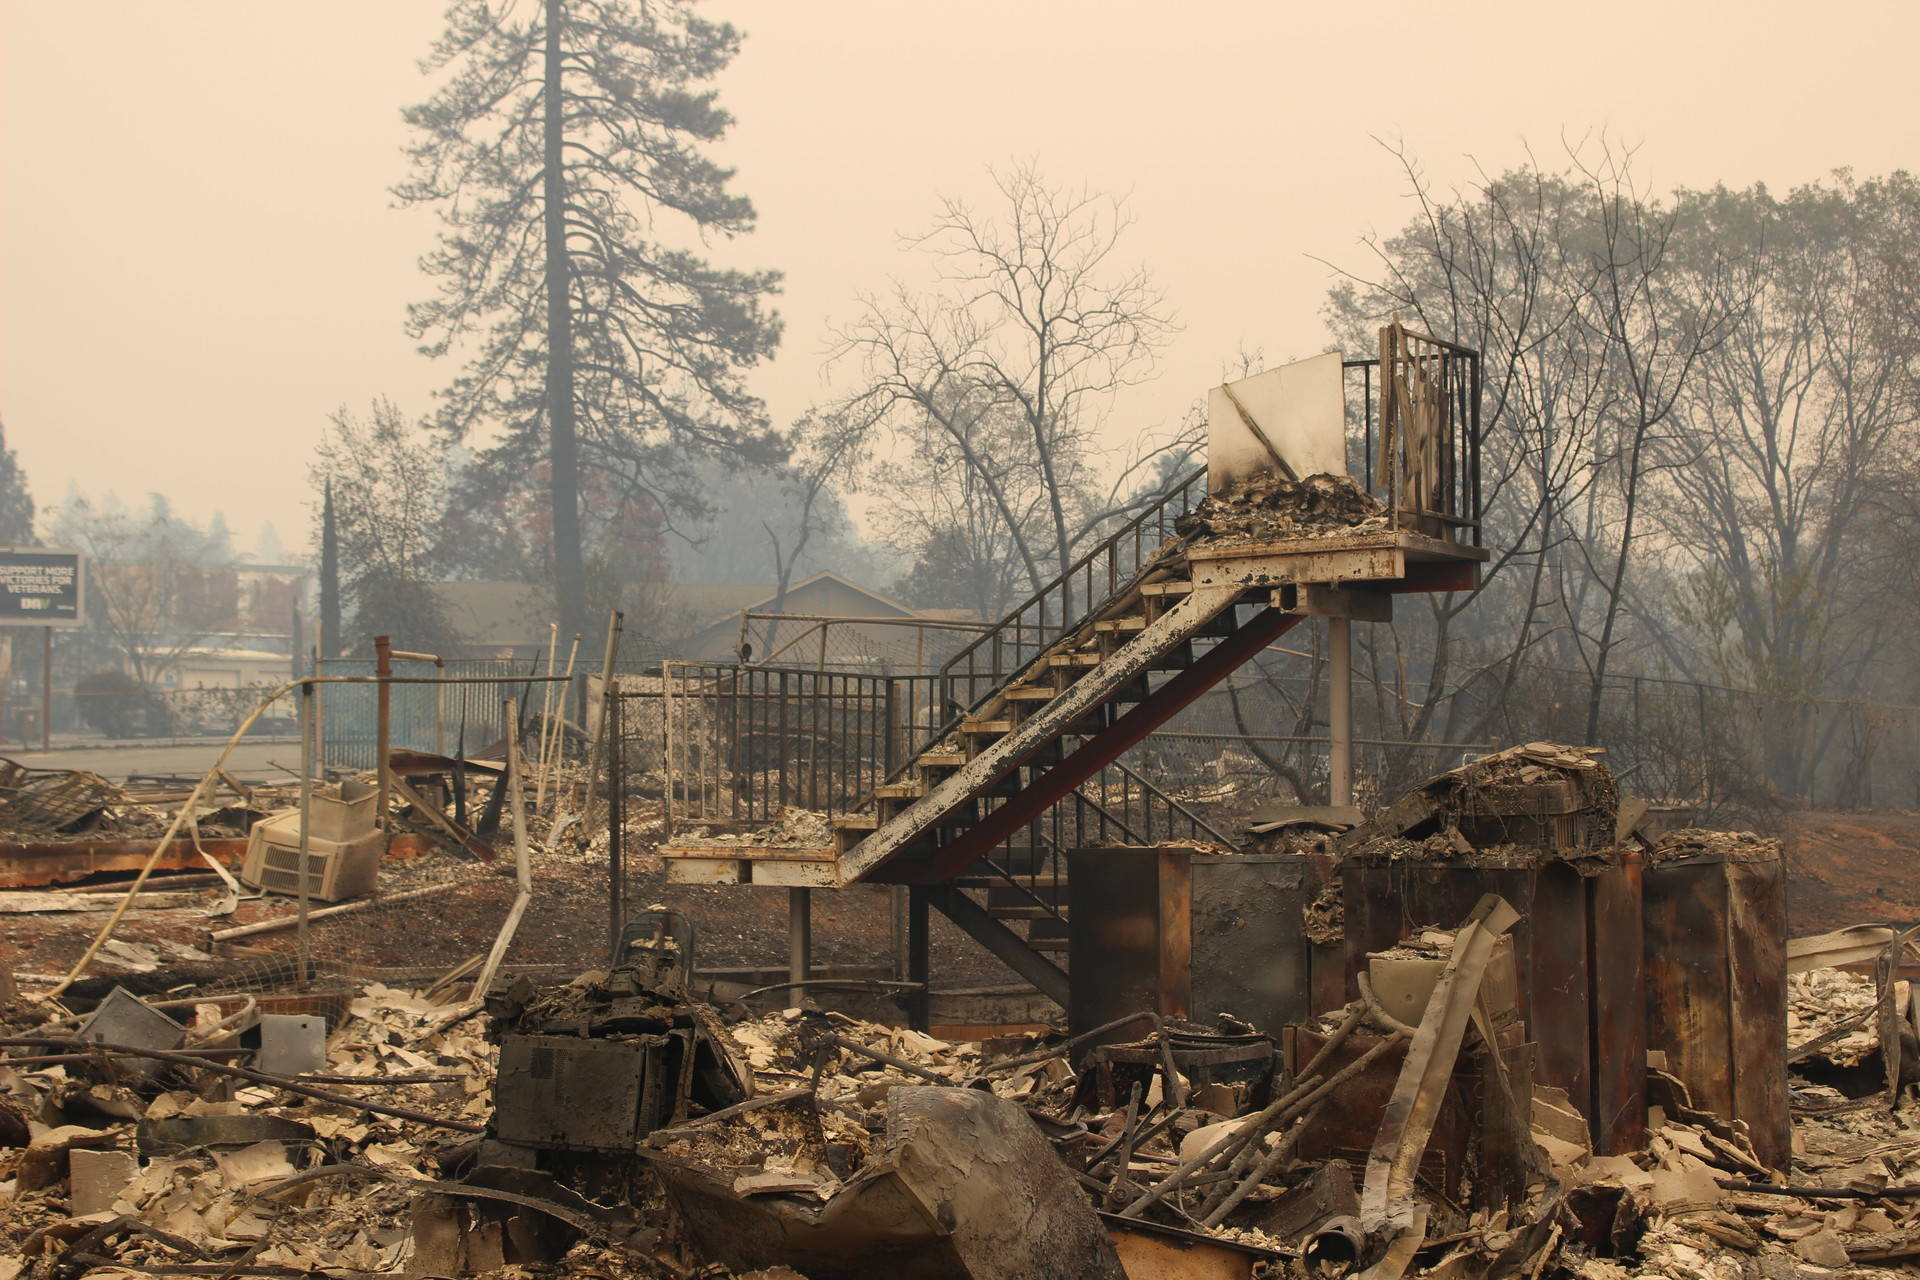 The debris left behind by the Camp Fire in Butte County will take a year to clean up.  Danielle Venton/KQED